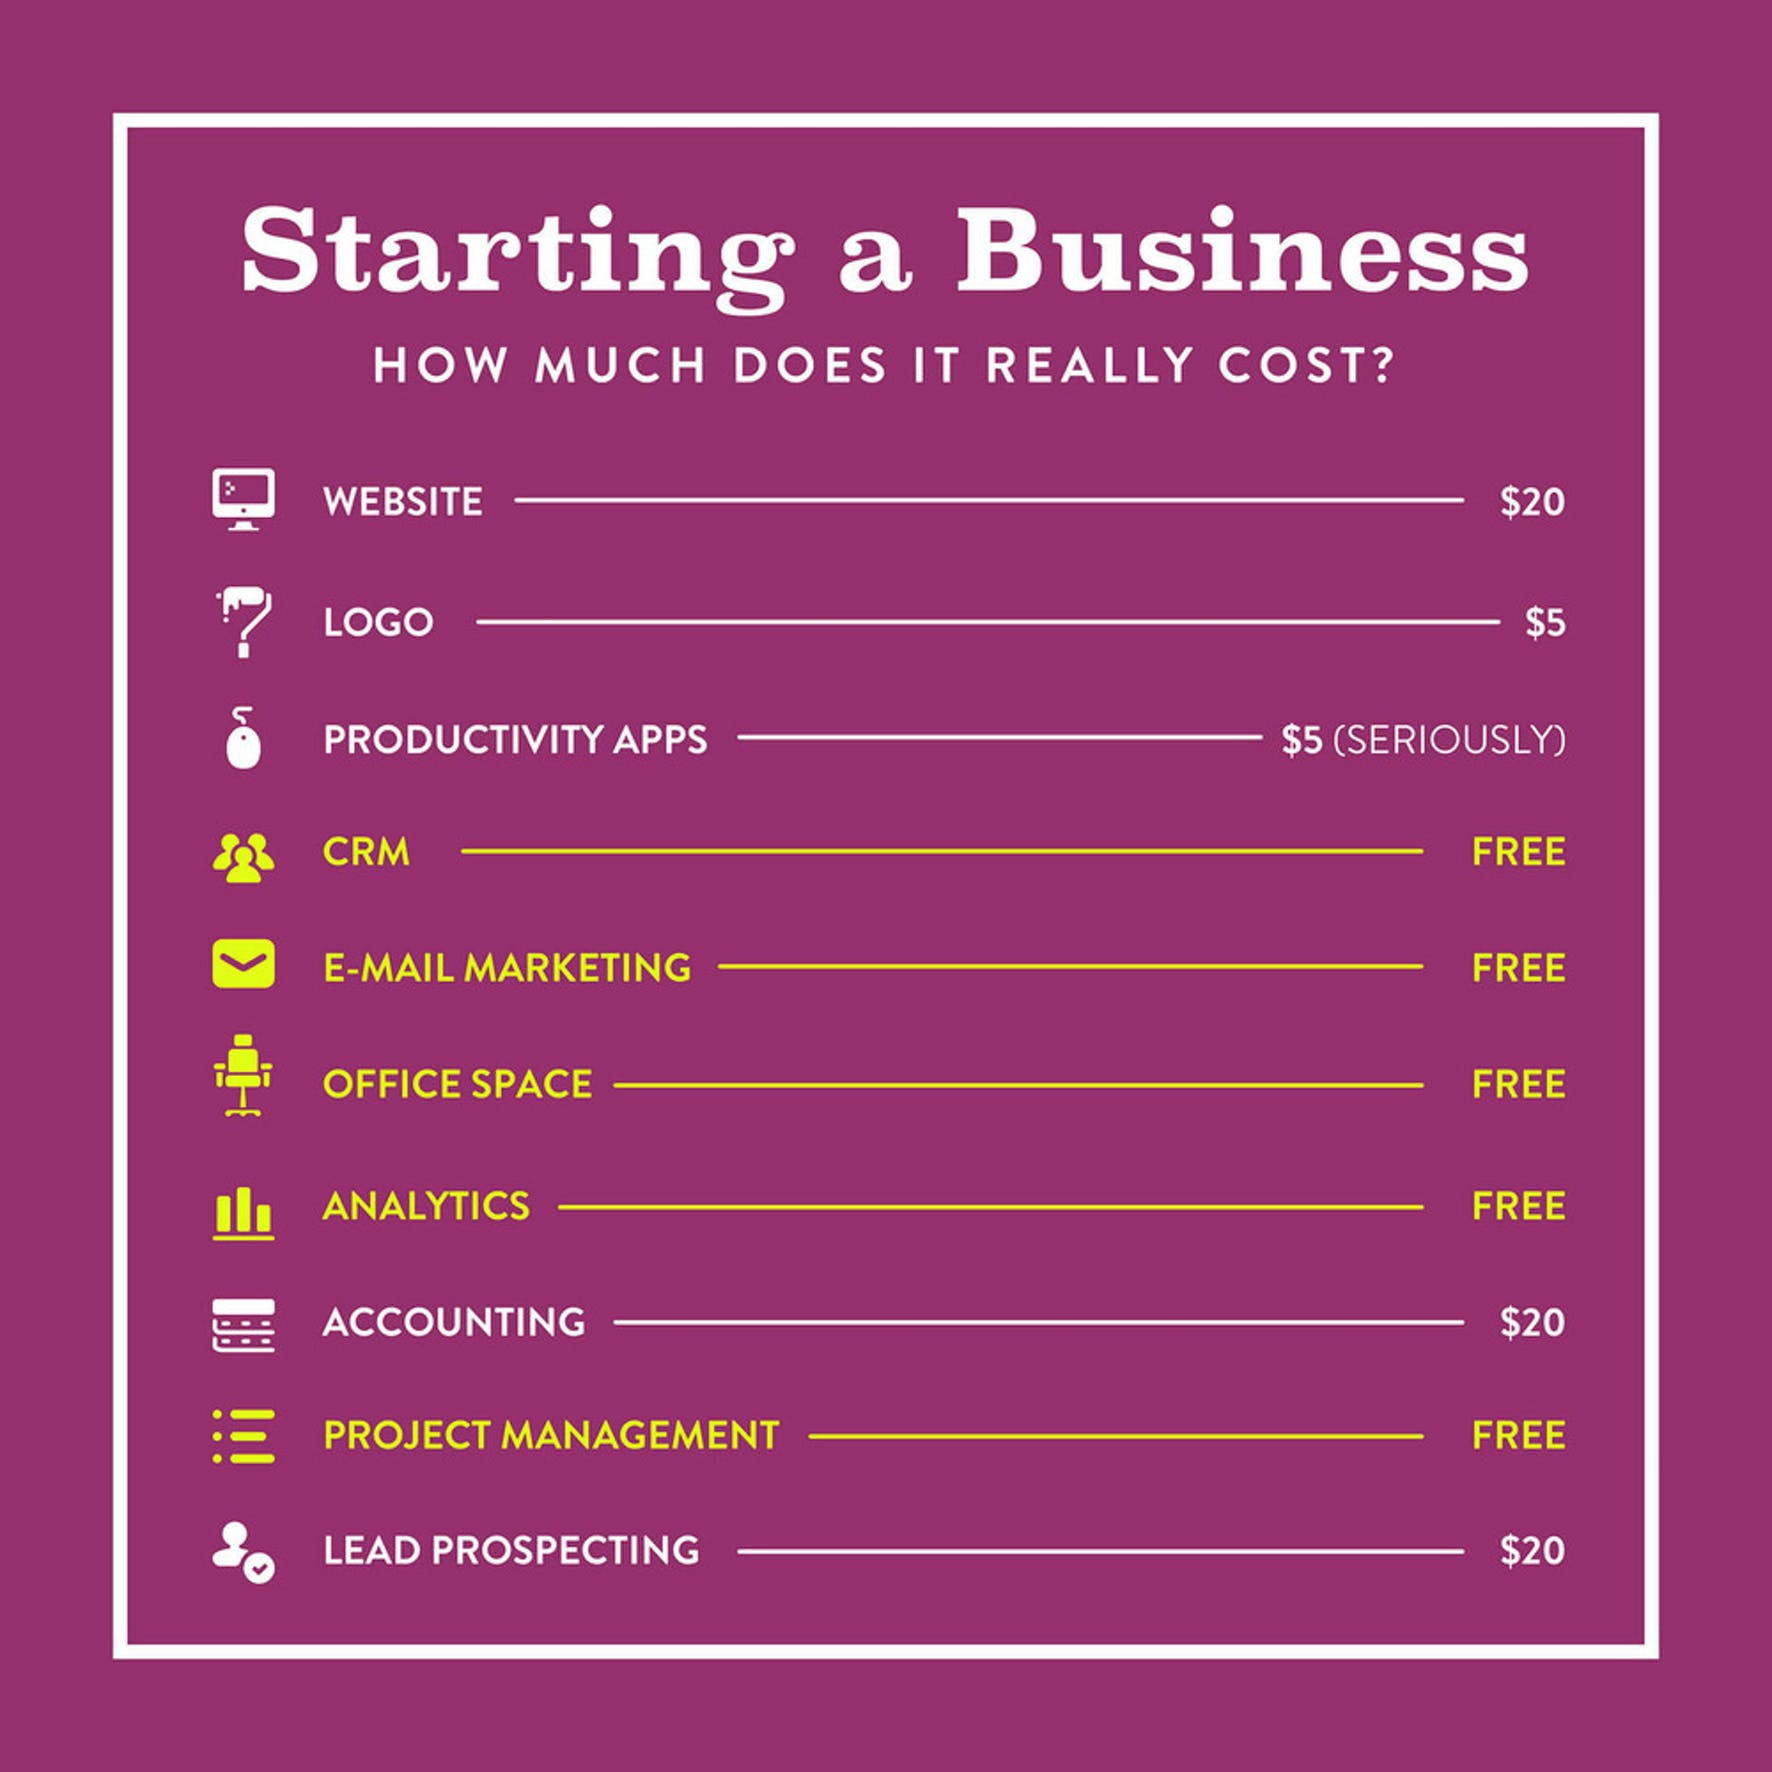 Poster shows how much starting a business really costs